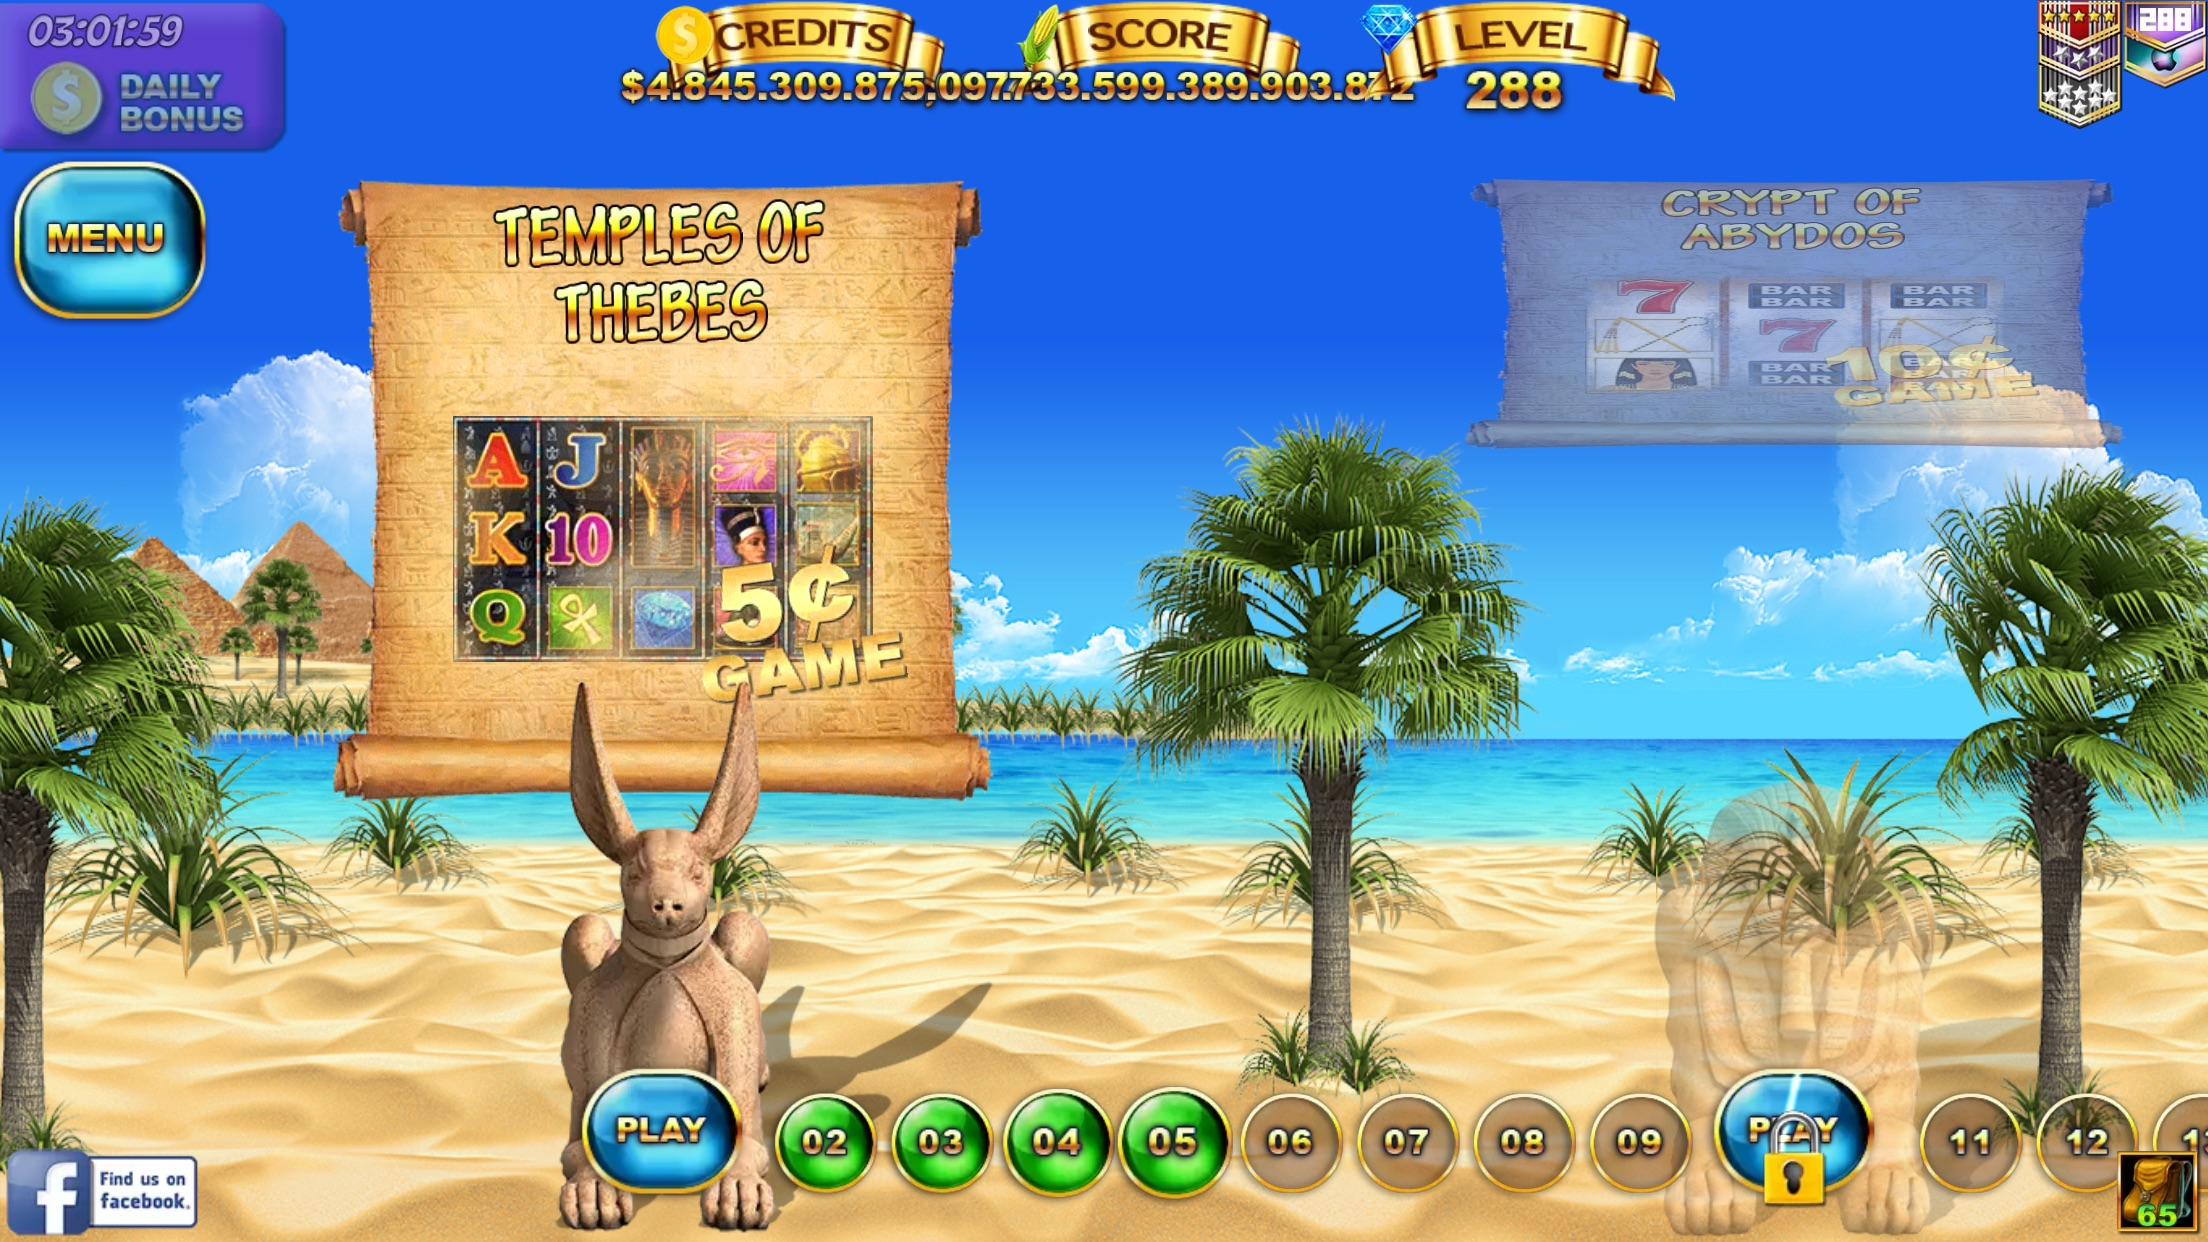 Slots - Pyramid Spirits 3 Screenshot